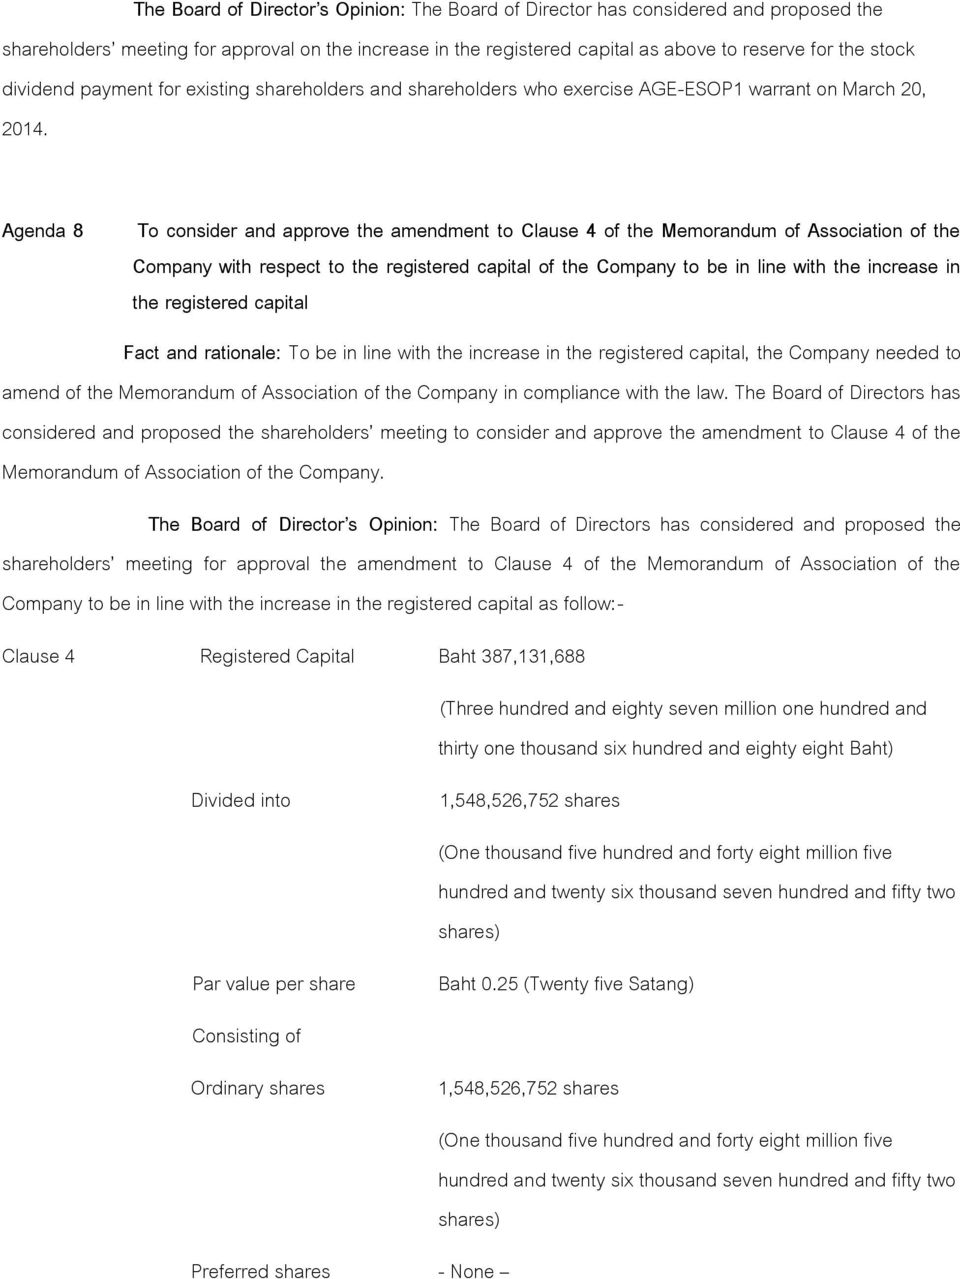 Agenda 8 To consider and approve the amendment to Clause 4 of the Memorandum of Association of the Company with respect to the registered capital of the Company to be in line with the increase in the